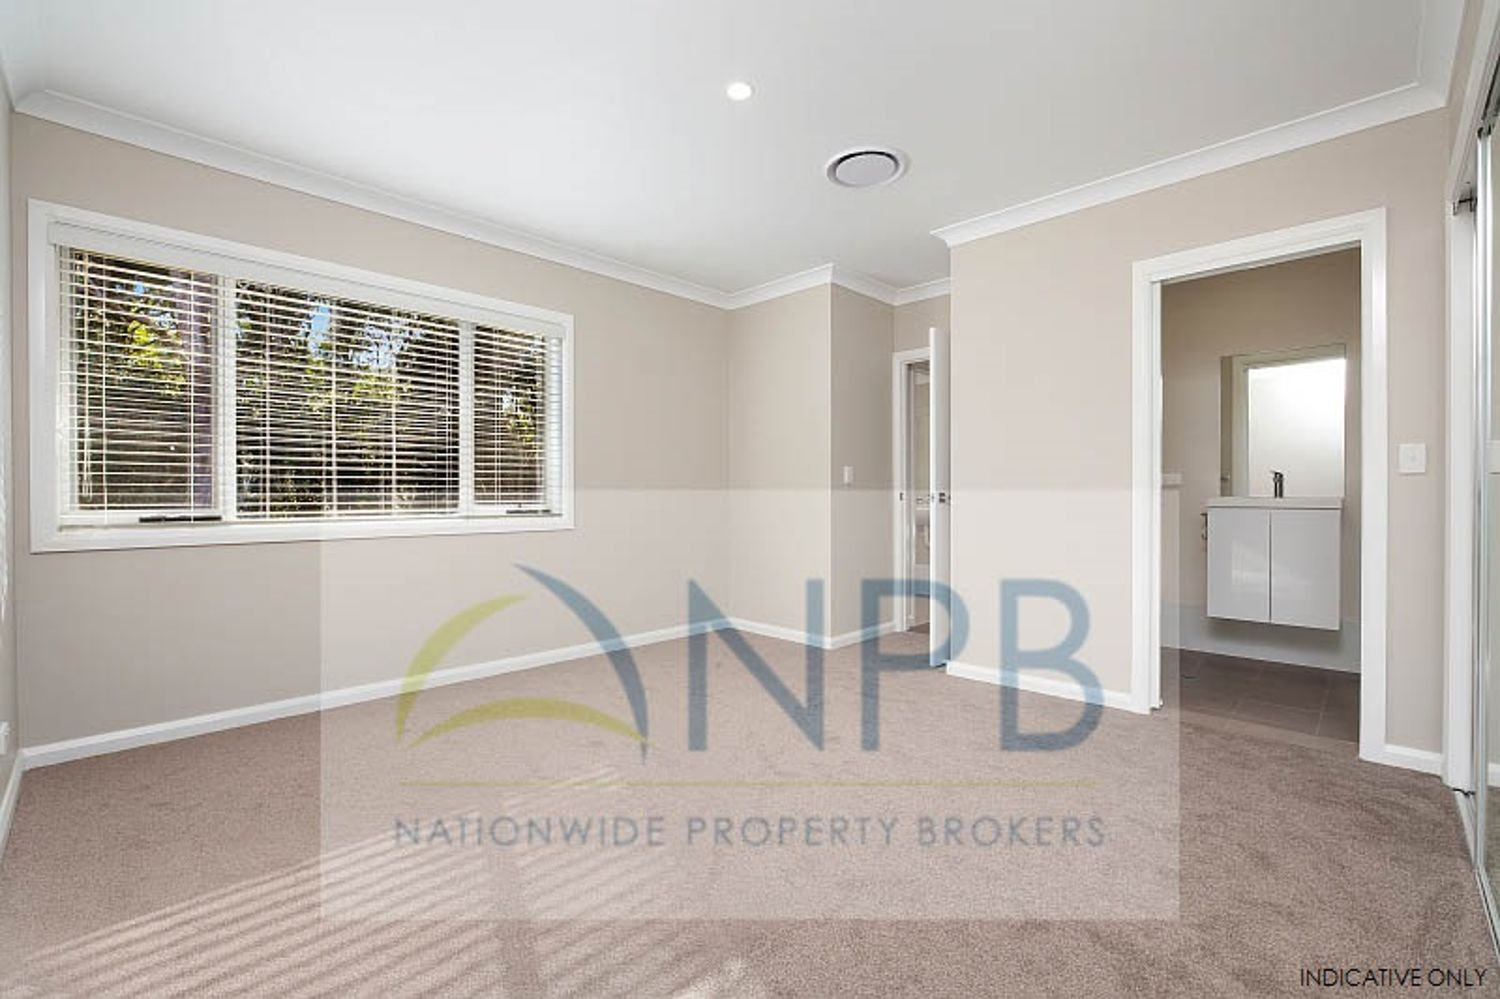 Real Estate in Port Macquarie